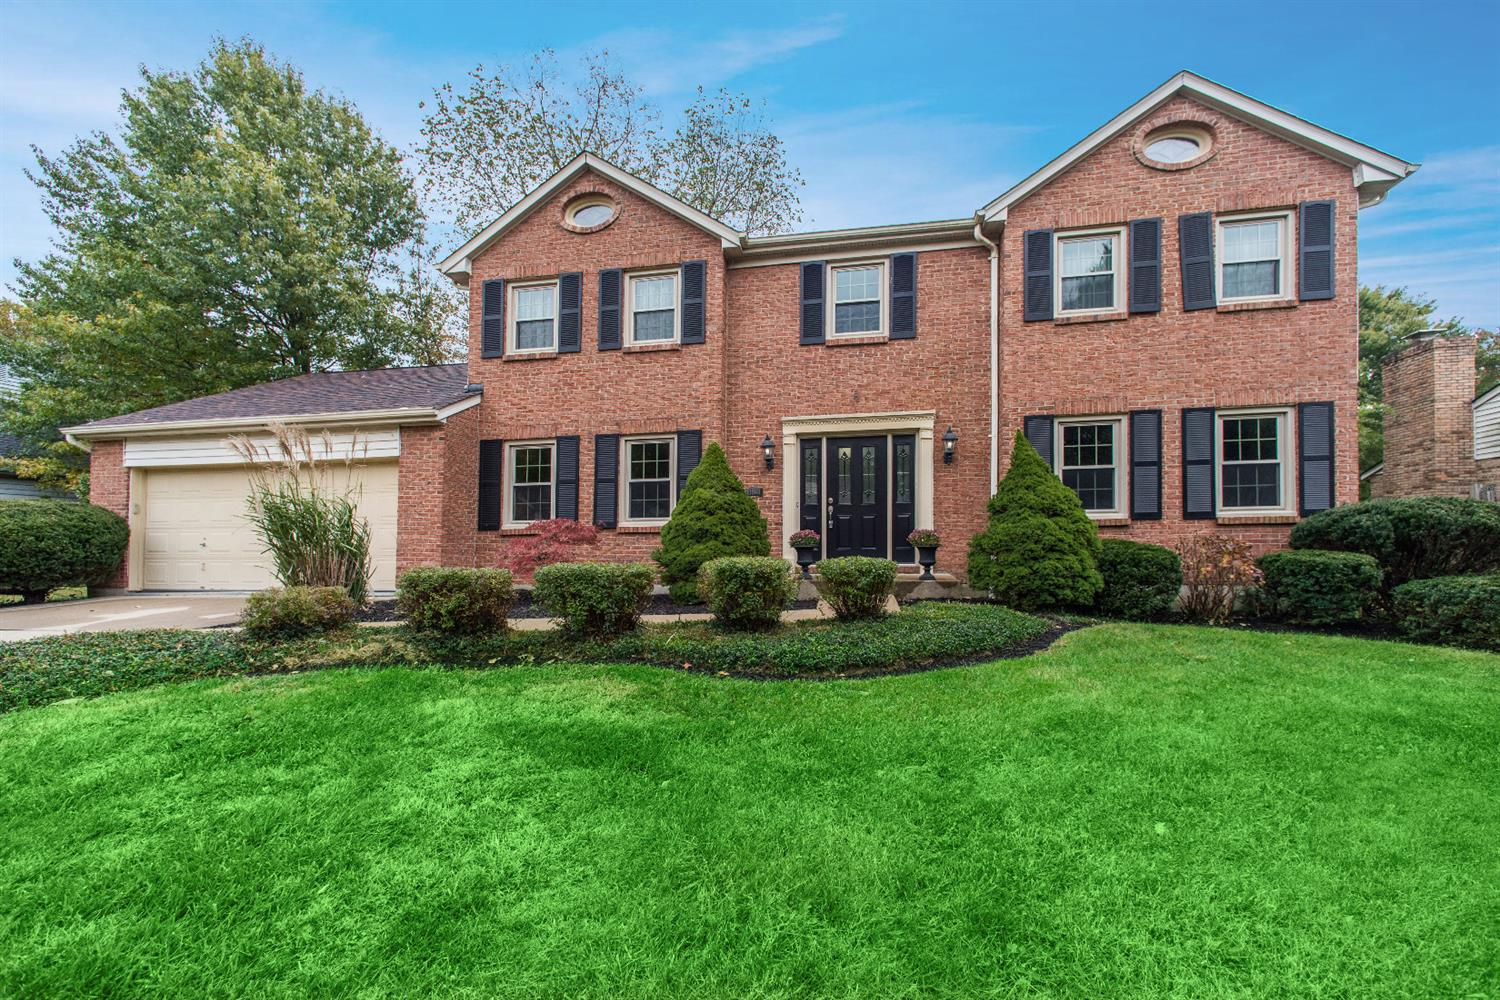 Property for sale at 11364 Donwiddle Drive, Symmes Twp,  OH 45140